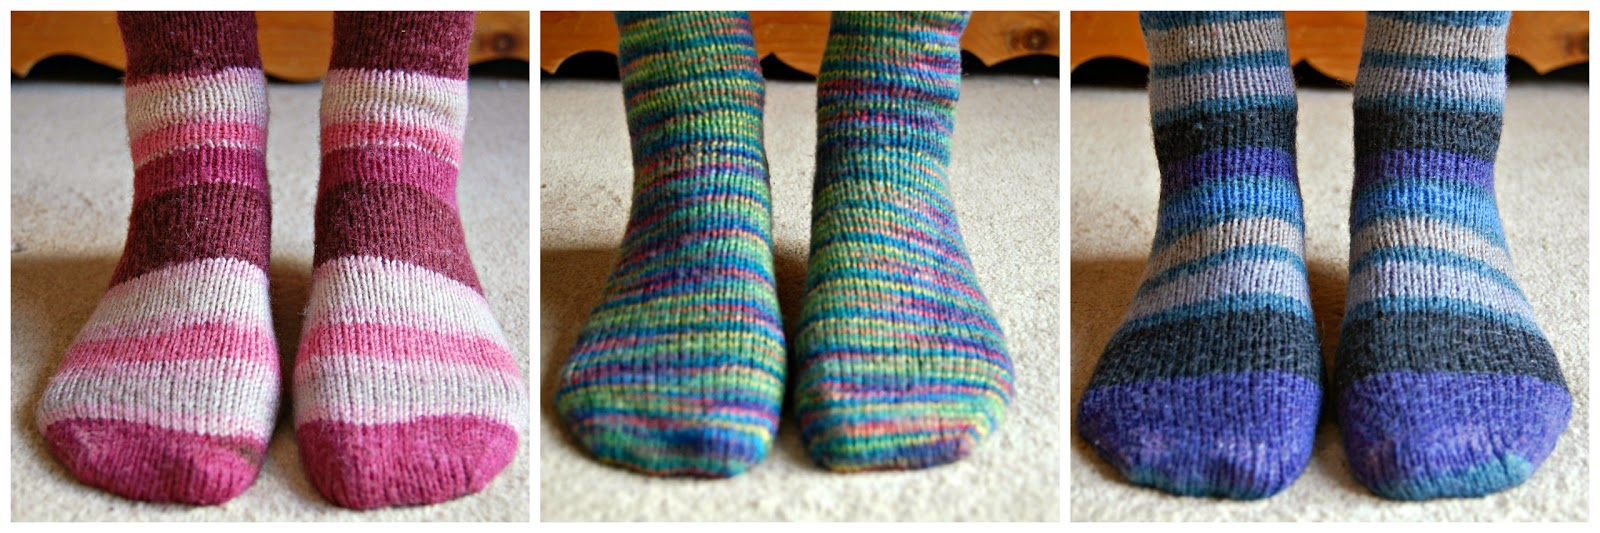 Free Crochet Sock Patterns Using Sock Yarn : Winwick Mum: Basic 6ply boot socks - free pattern and tutorial